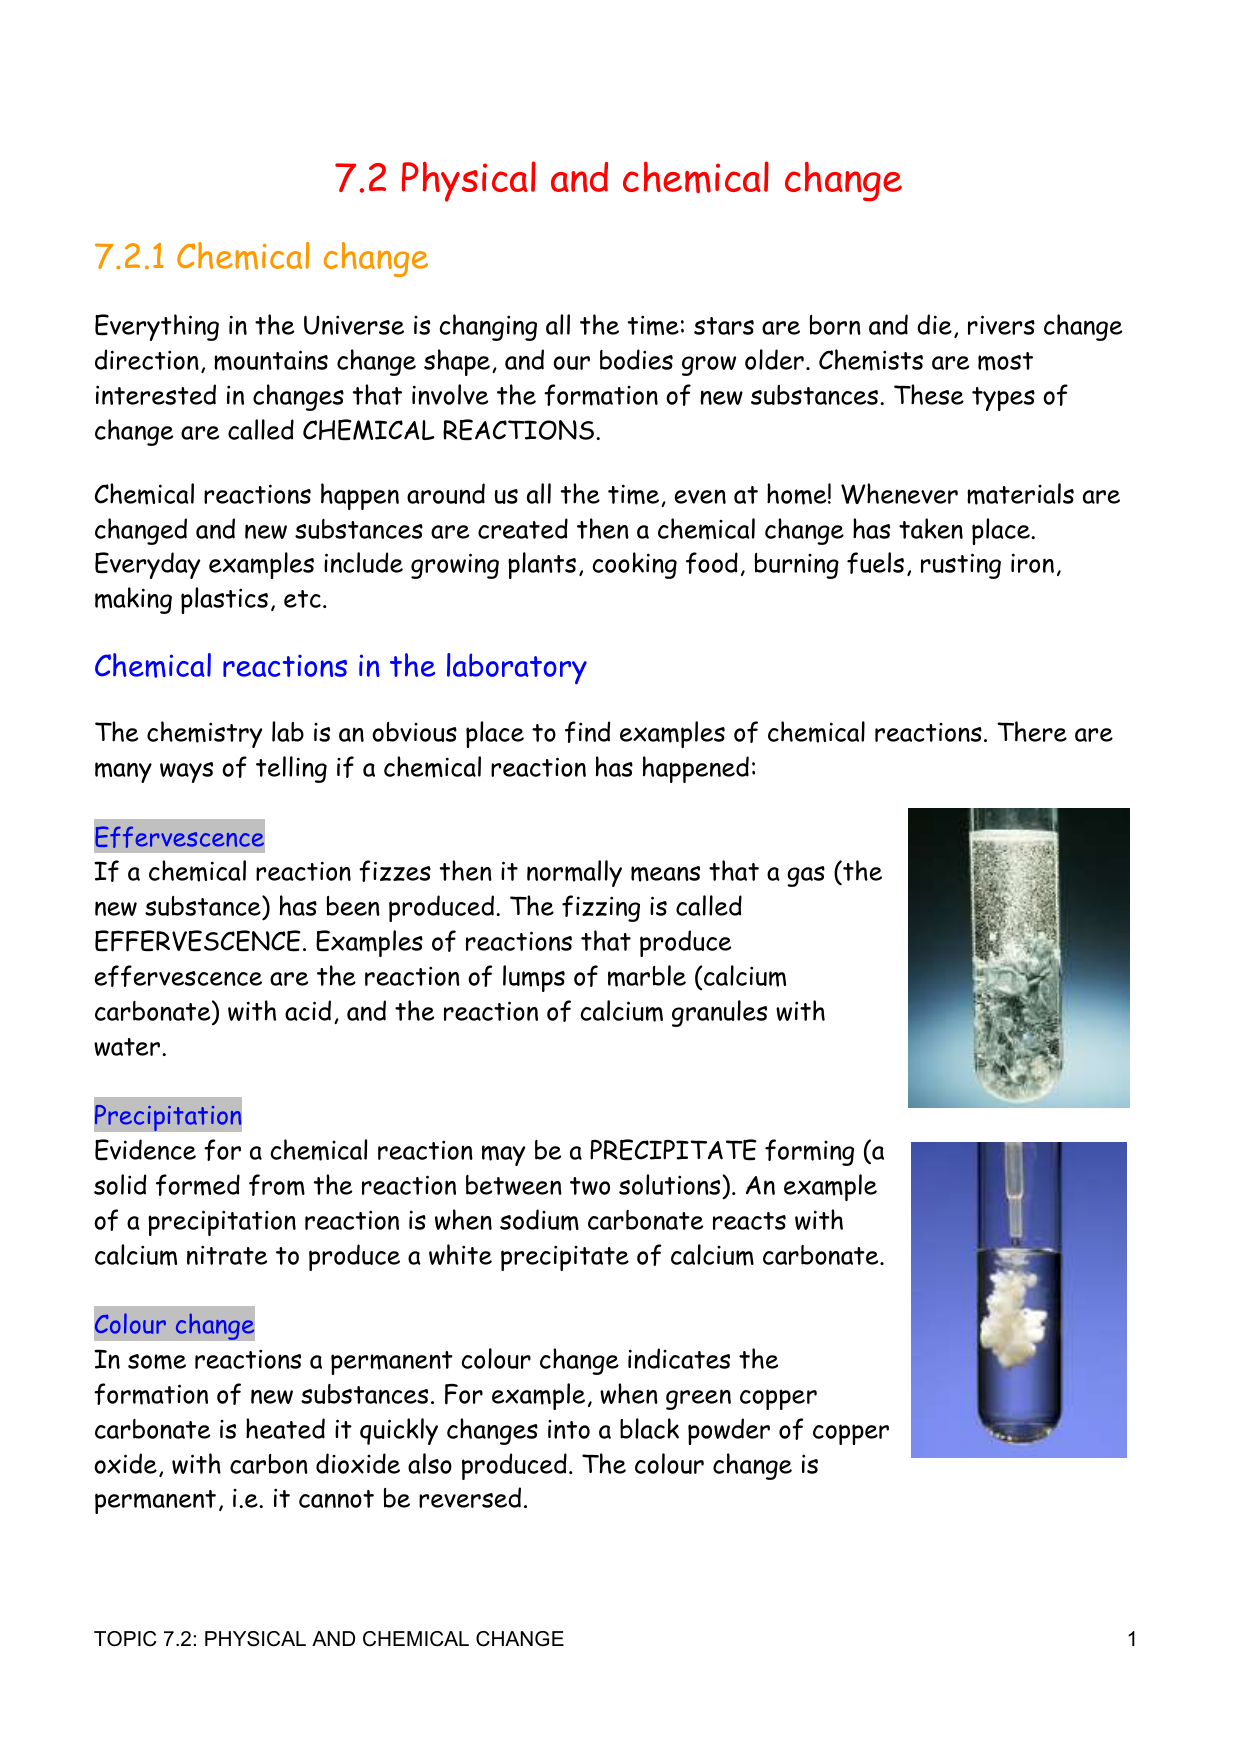 7.2 Physical & Chemical Changes